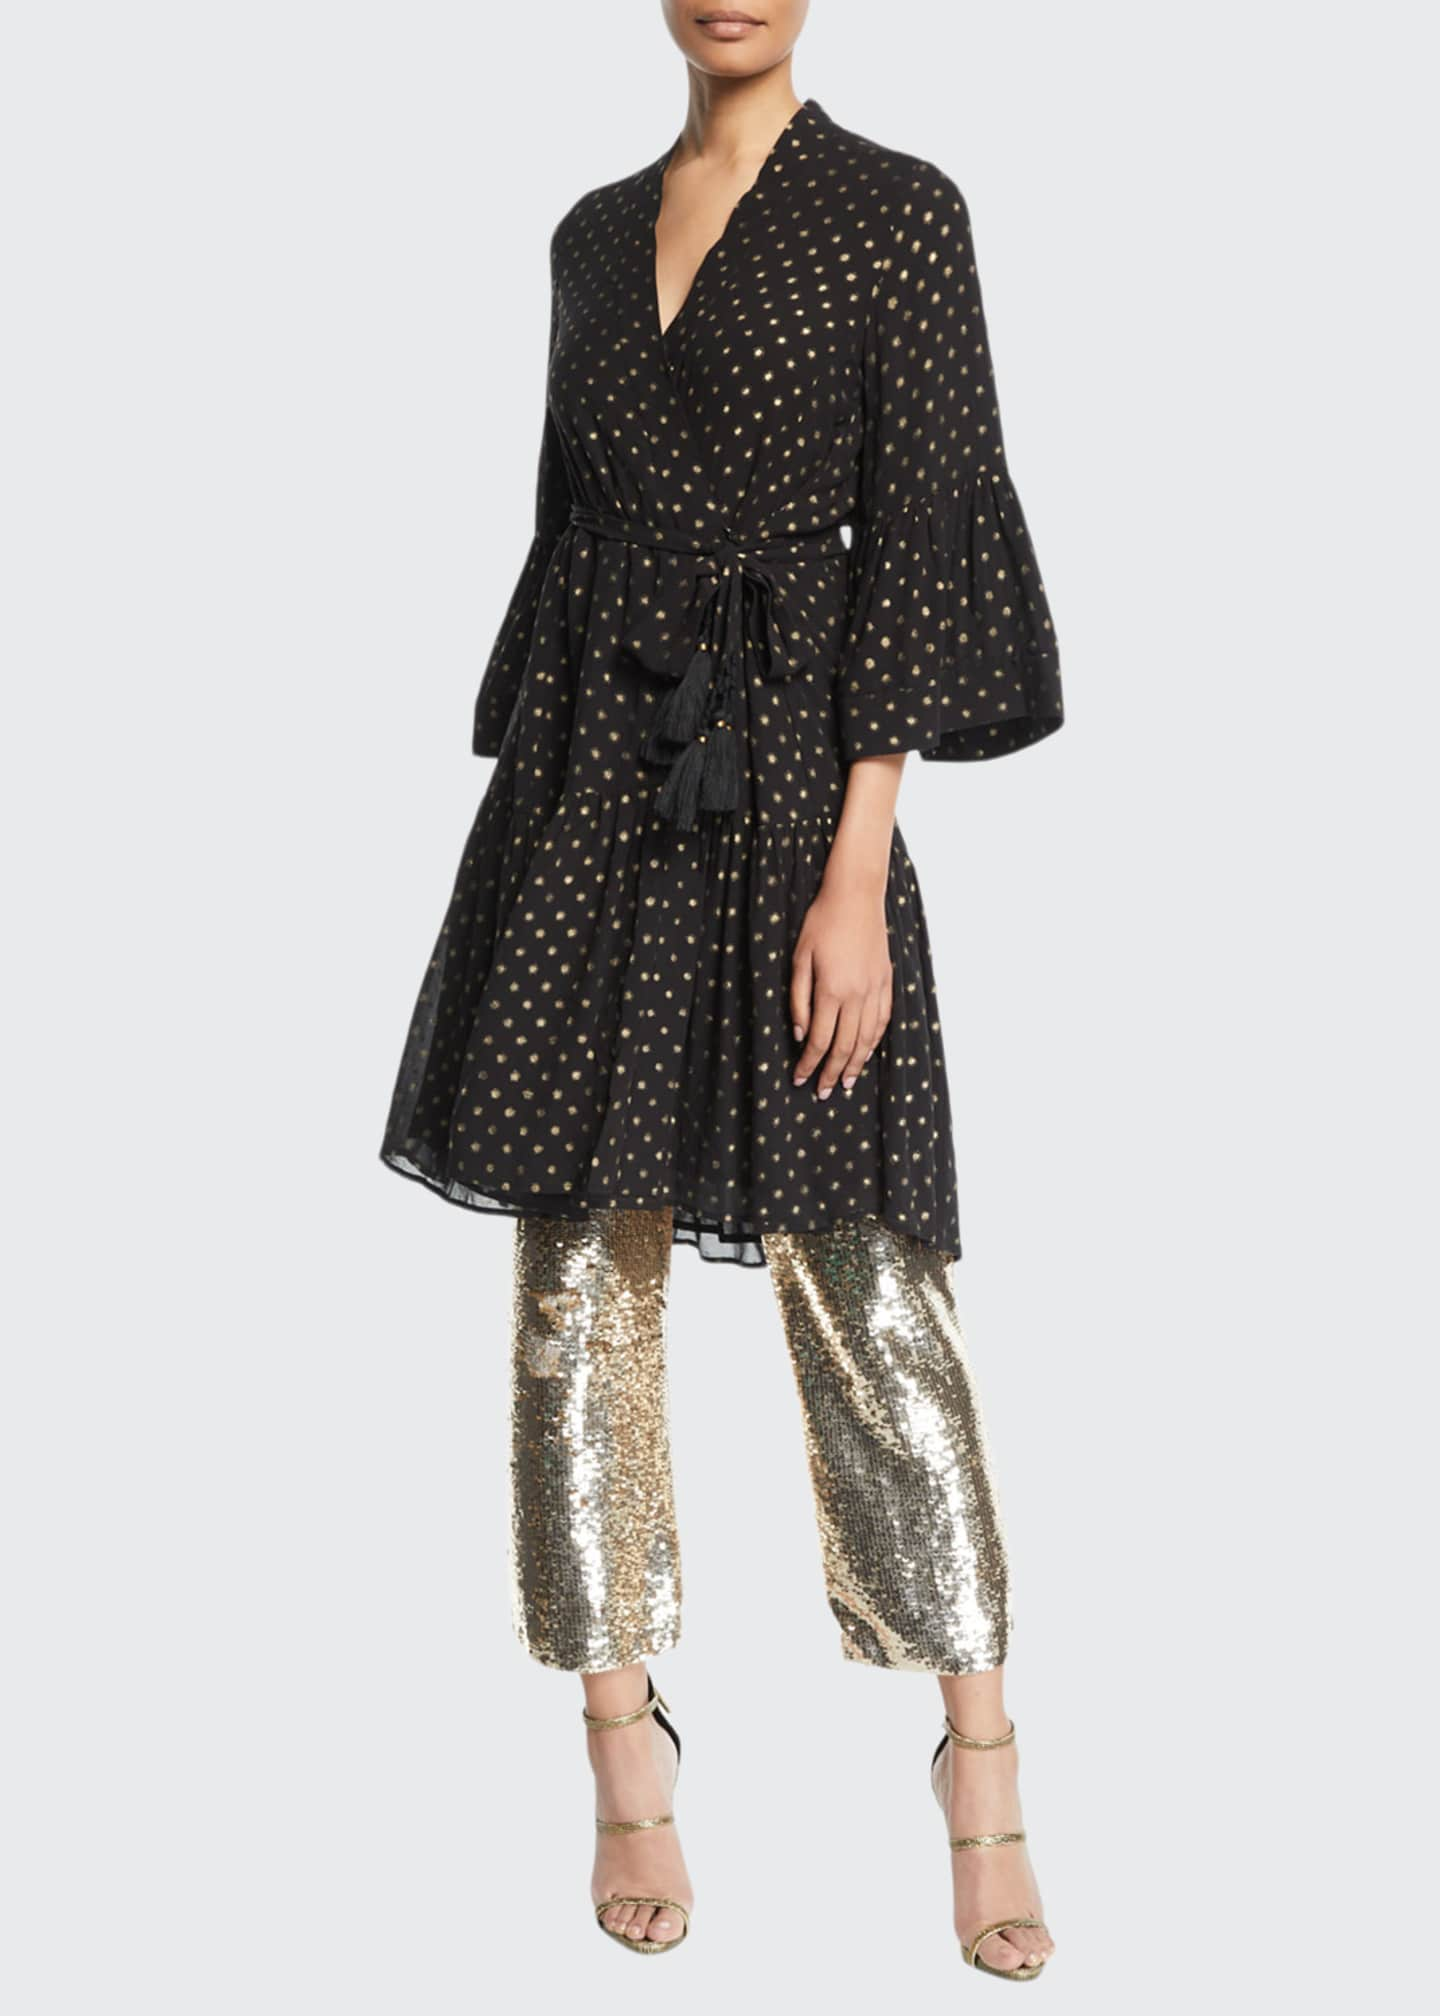 Figue Caroline Metallic Dot Kimono-Style Dress